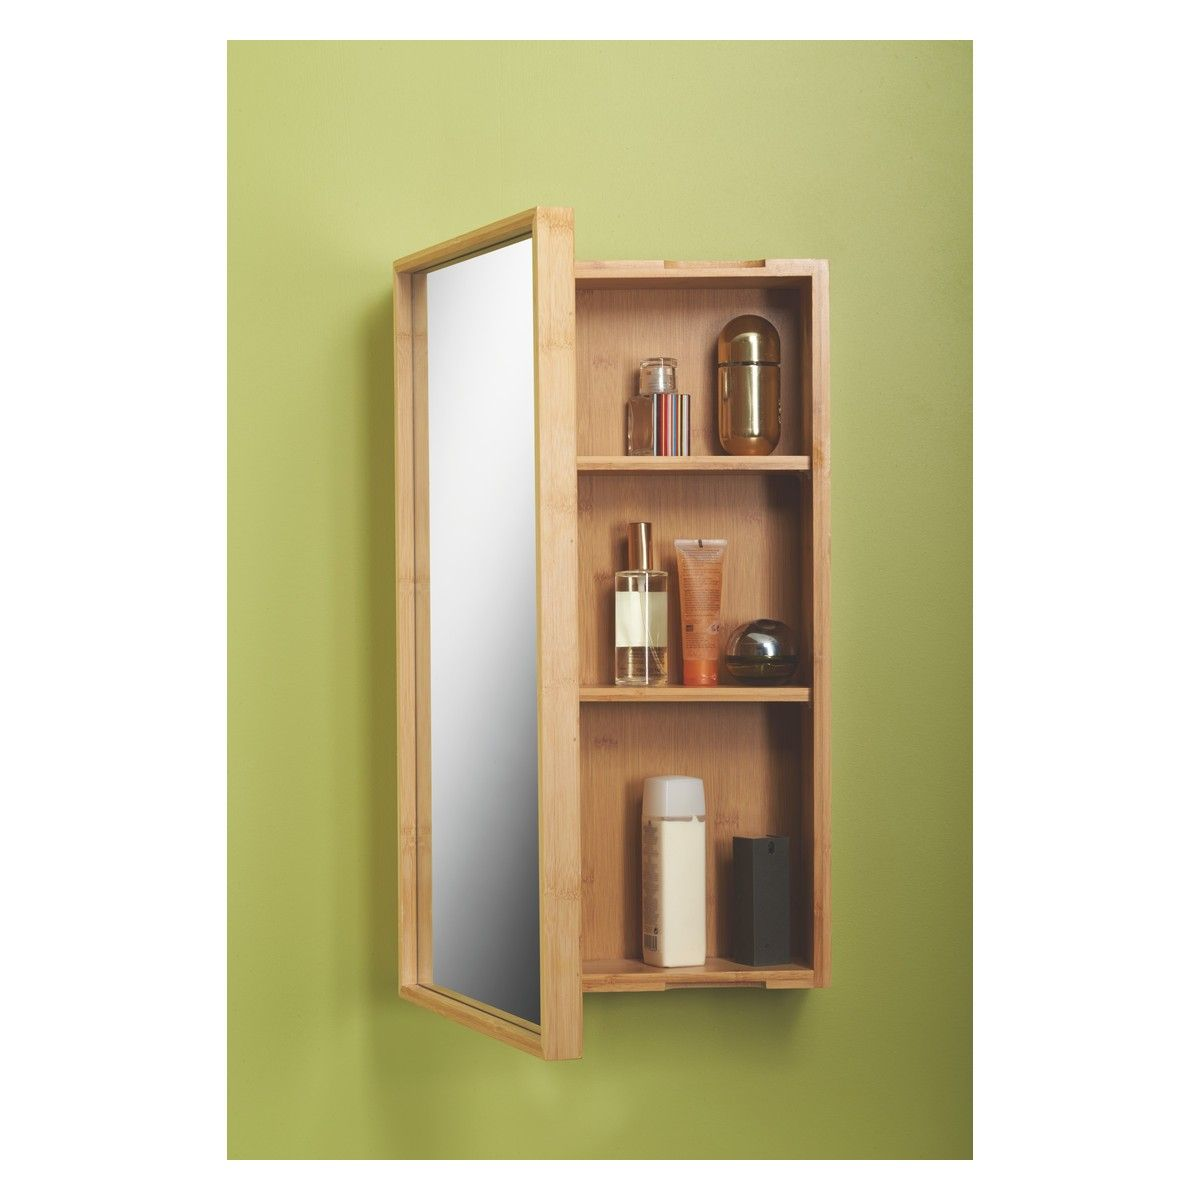 TAIO Bamboo single mirrored bathroom cabinet | New house - guest ...